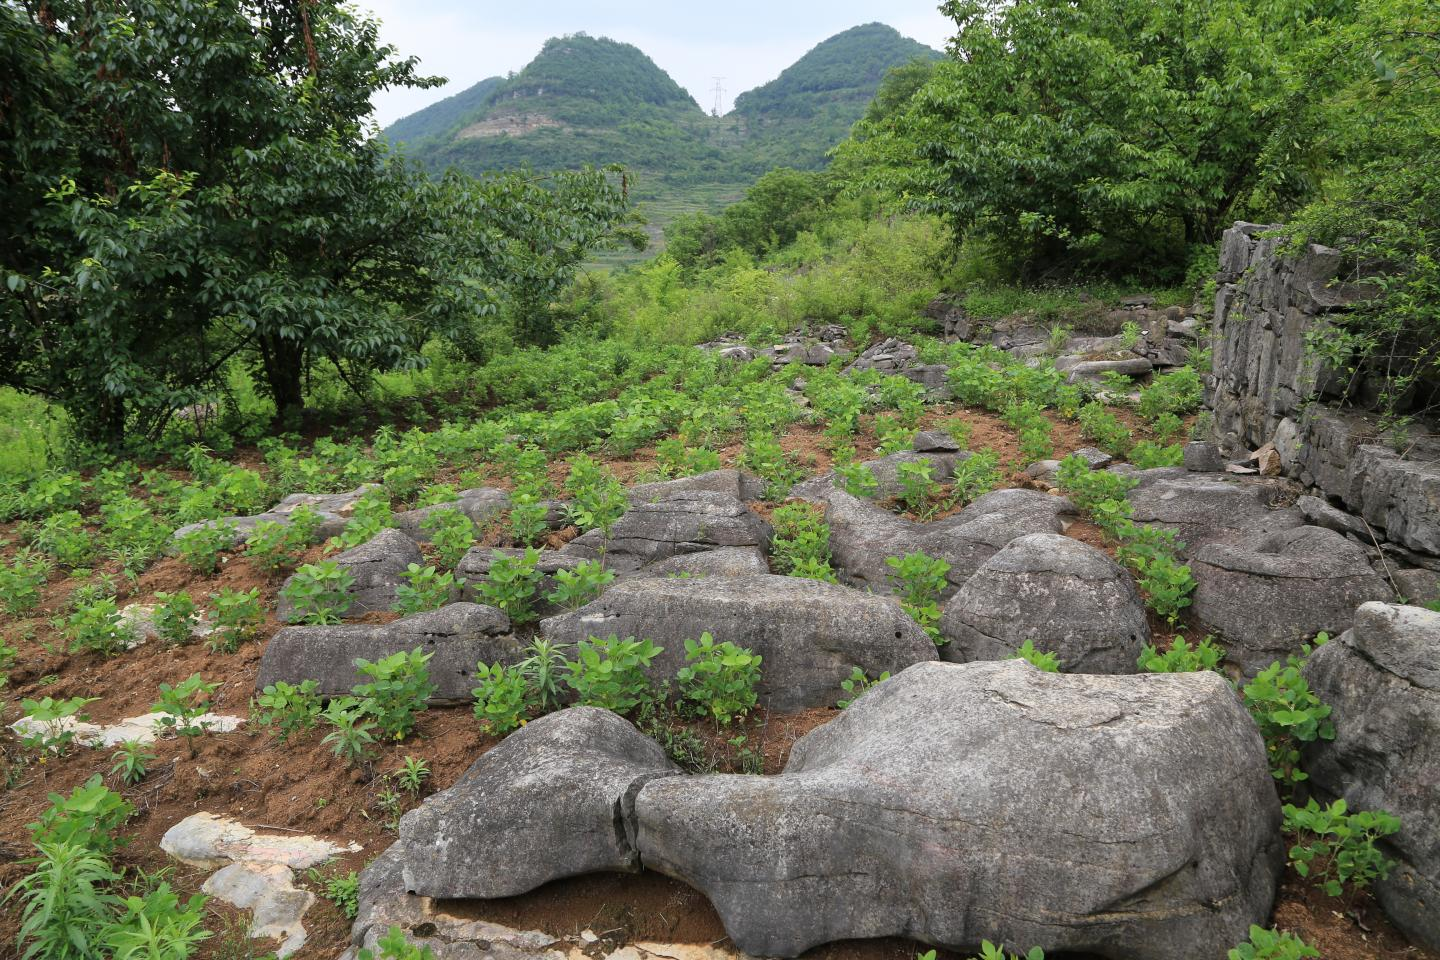 Rocky desertification exposing bedrock in the Chenqi catchment in the Karst Critical Zone Observatory Guizhou Province, China